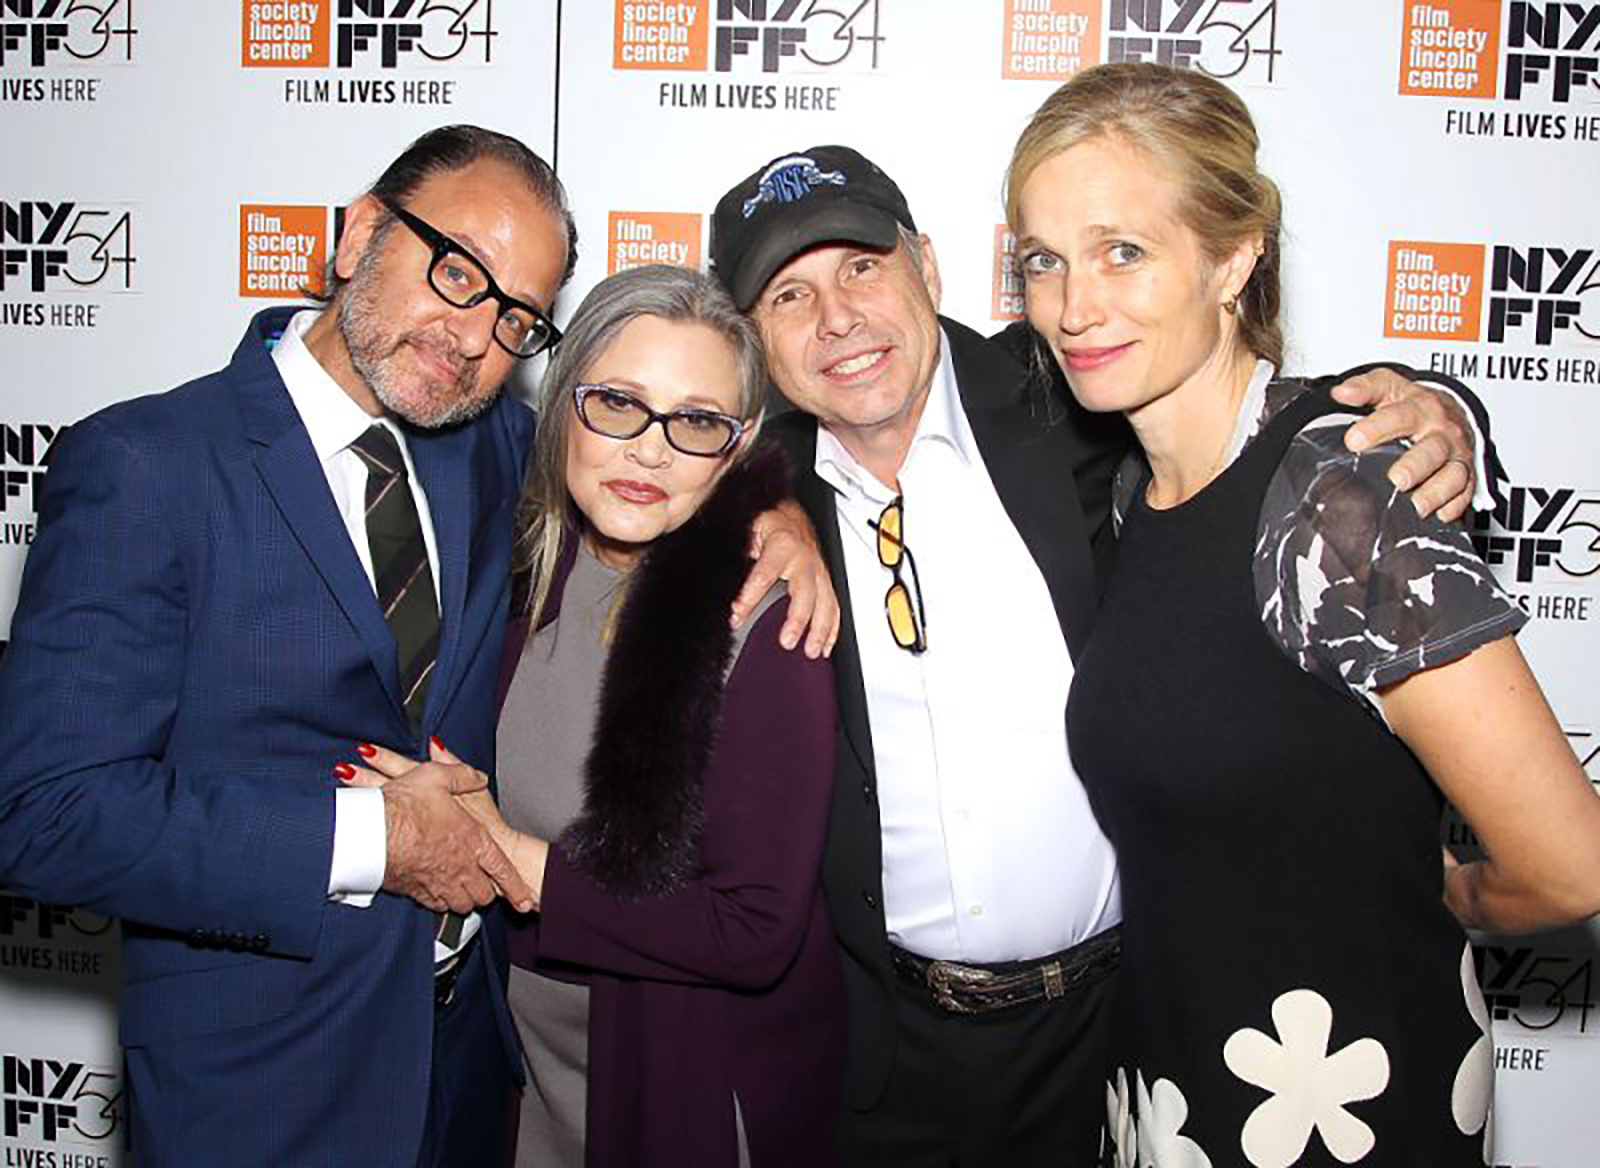 "FISHER STEVENS, CARRIE, TODD AND ALEXIS BLOOM AT THE NYC FILM FESTIVAL FOR ""BRIGHT LIGHTS"""